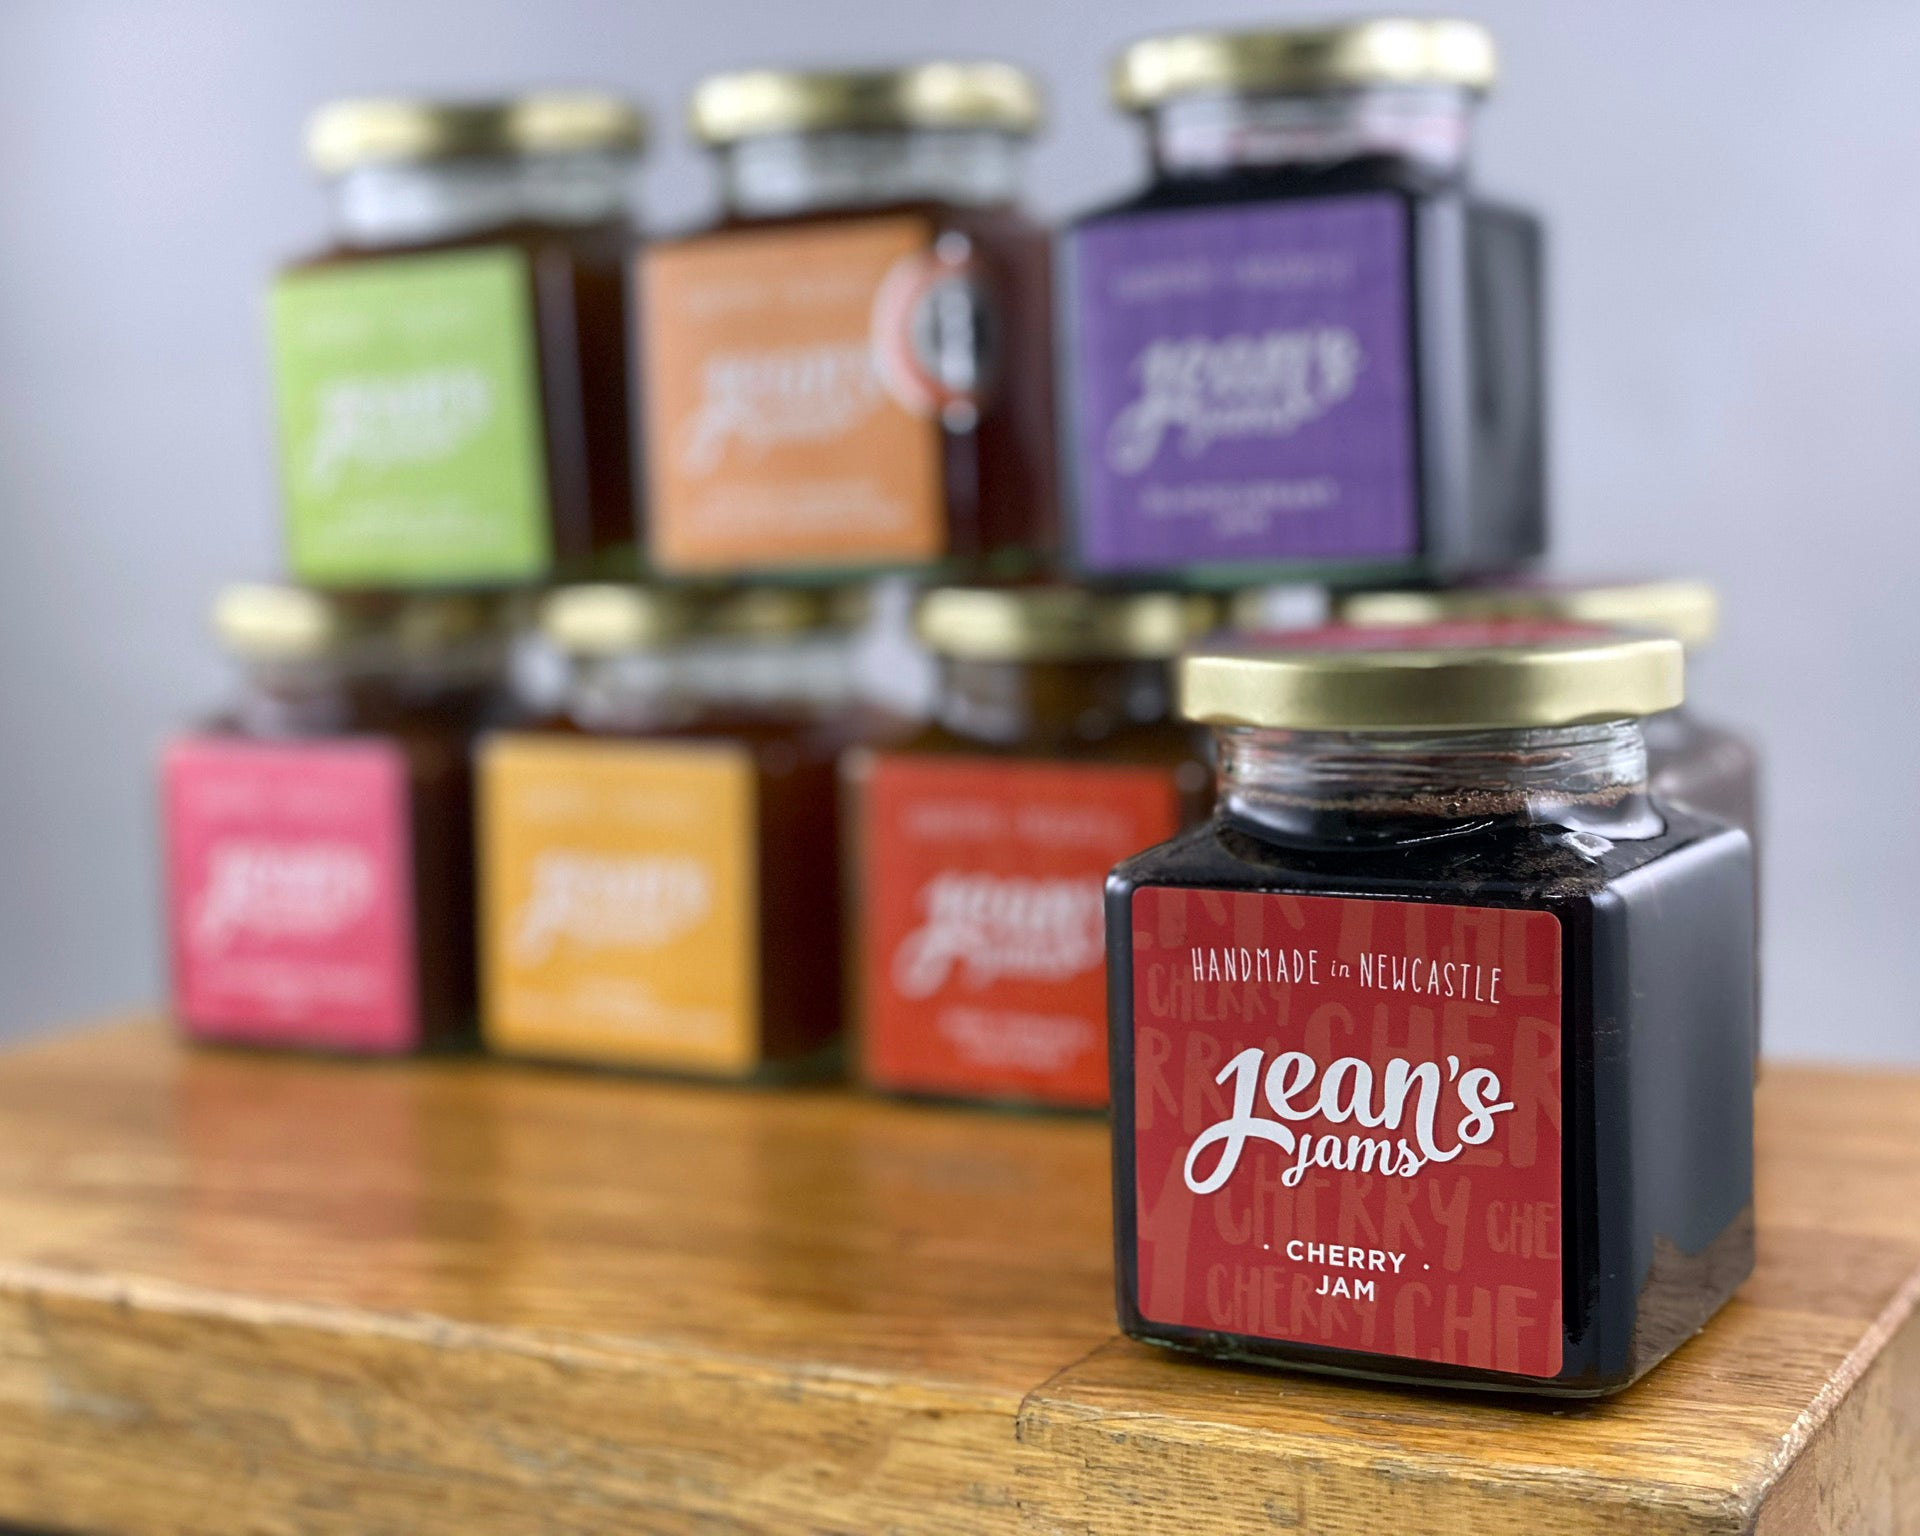 French Oven: Jean's Jams 'Cherry Jam'